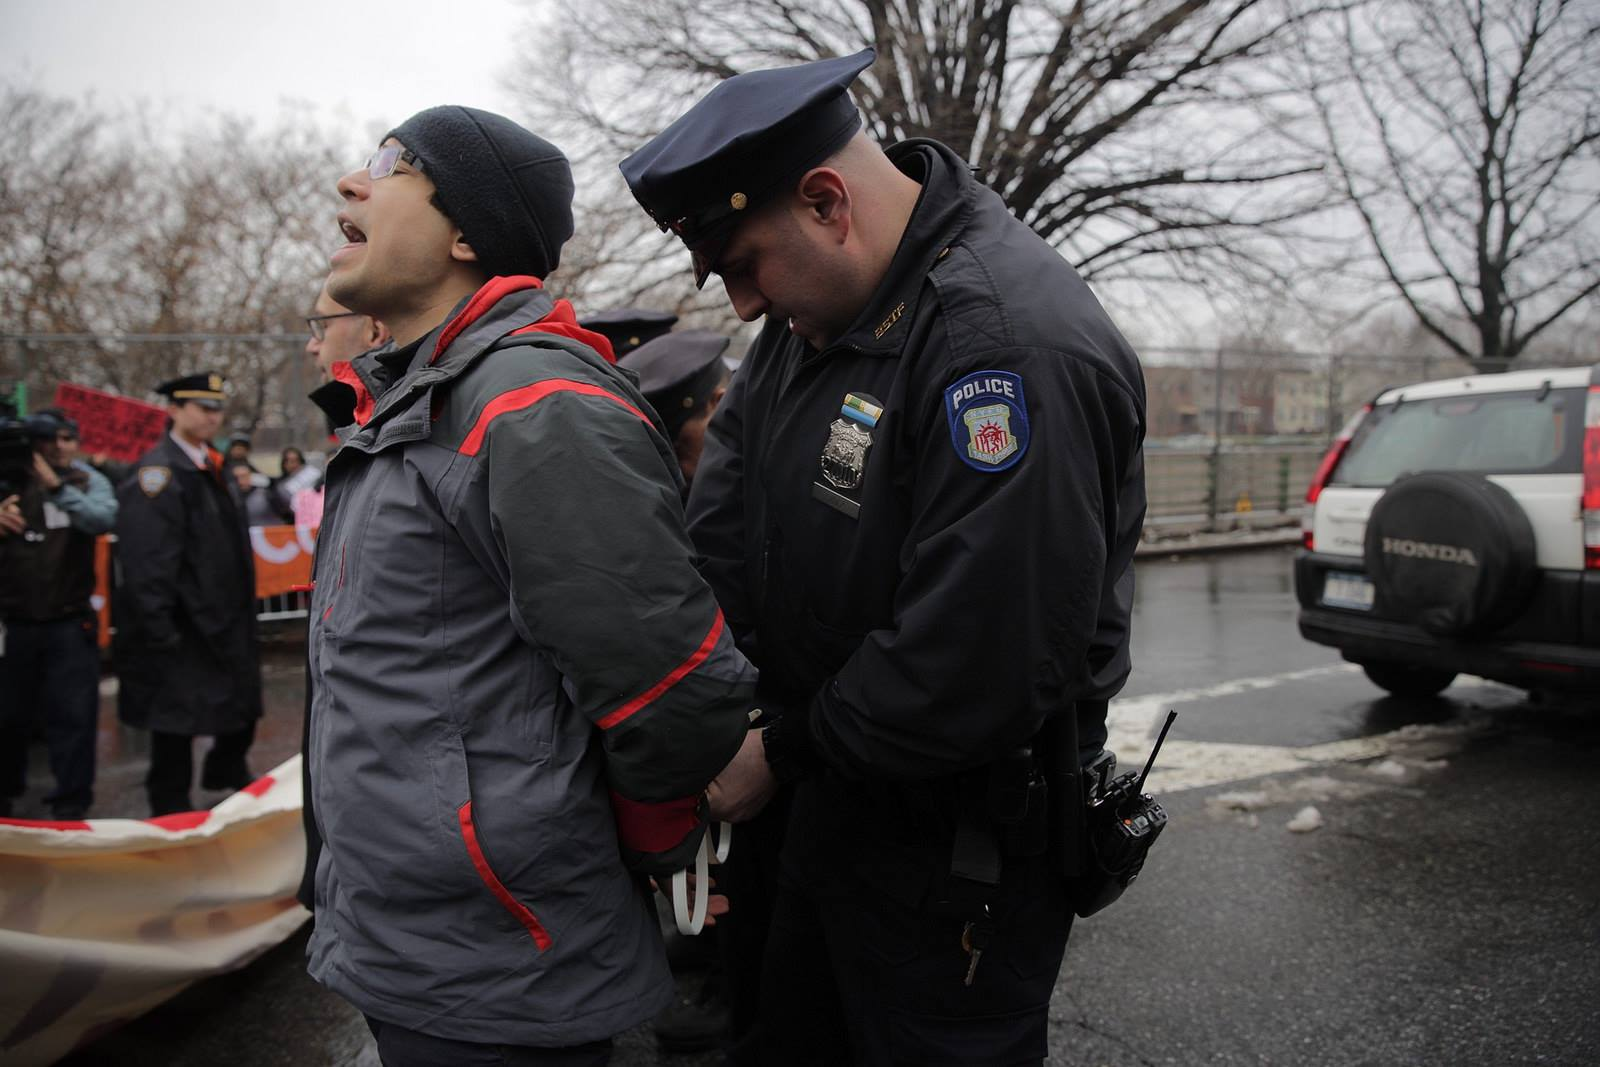 Wednesday, March 4, 2015. Brooklyn, New York City - New York City Councilman Carlos Menchaca was arrested during a protest outside the Vegas Auto Spa in Greenwood Heights. Photo: Carlos Menchaca/Facebook.